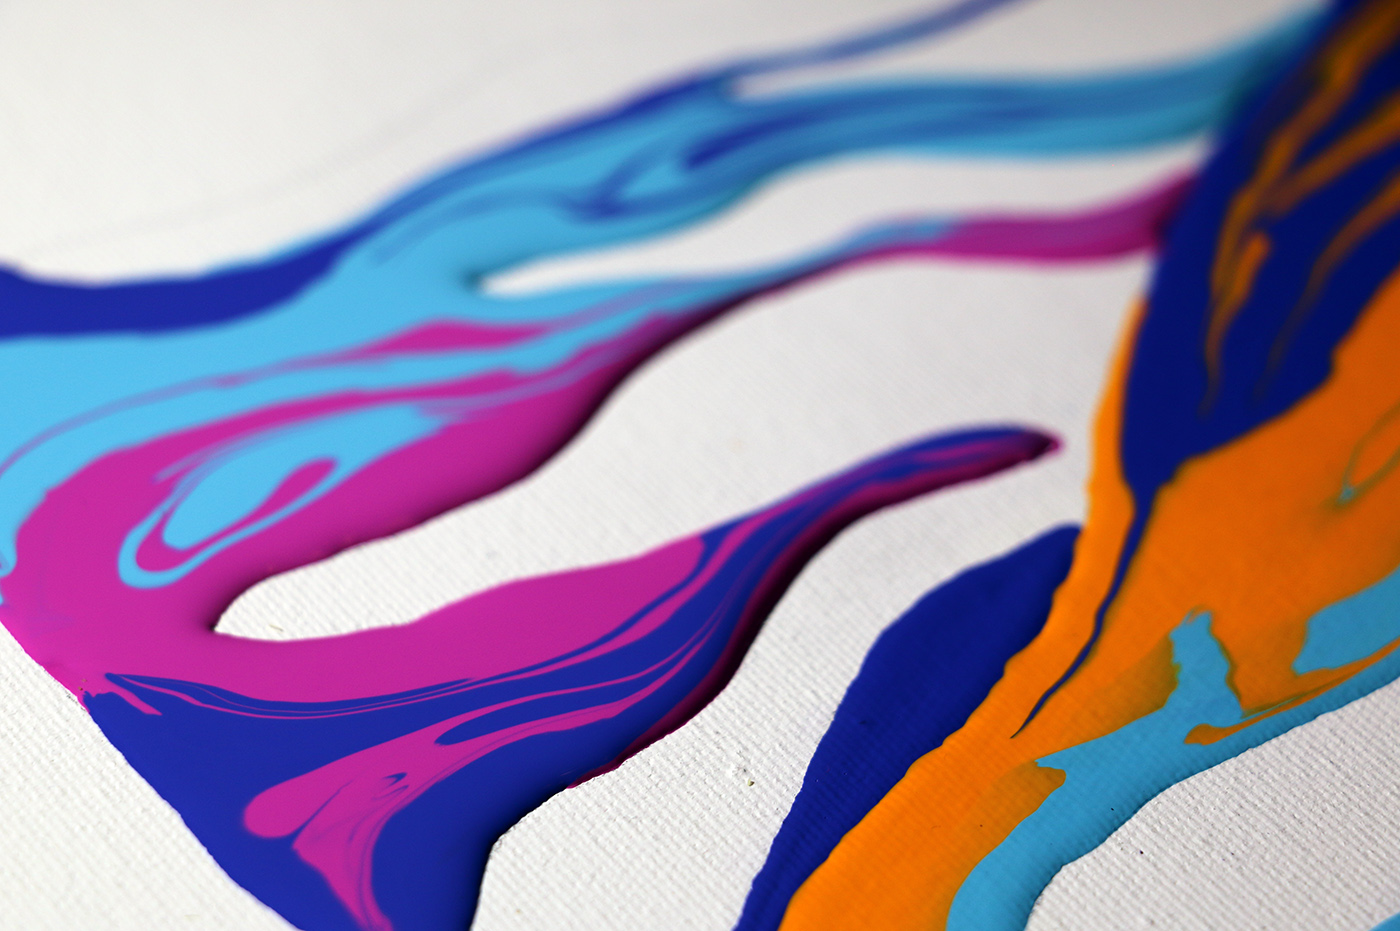 Psychameleon Transcendence 4.0 by Shane Turner. Close-up of raised colorful acrylic paint on white paper.